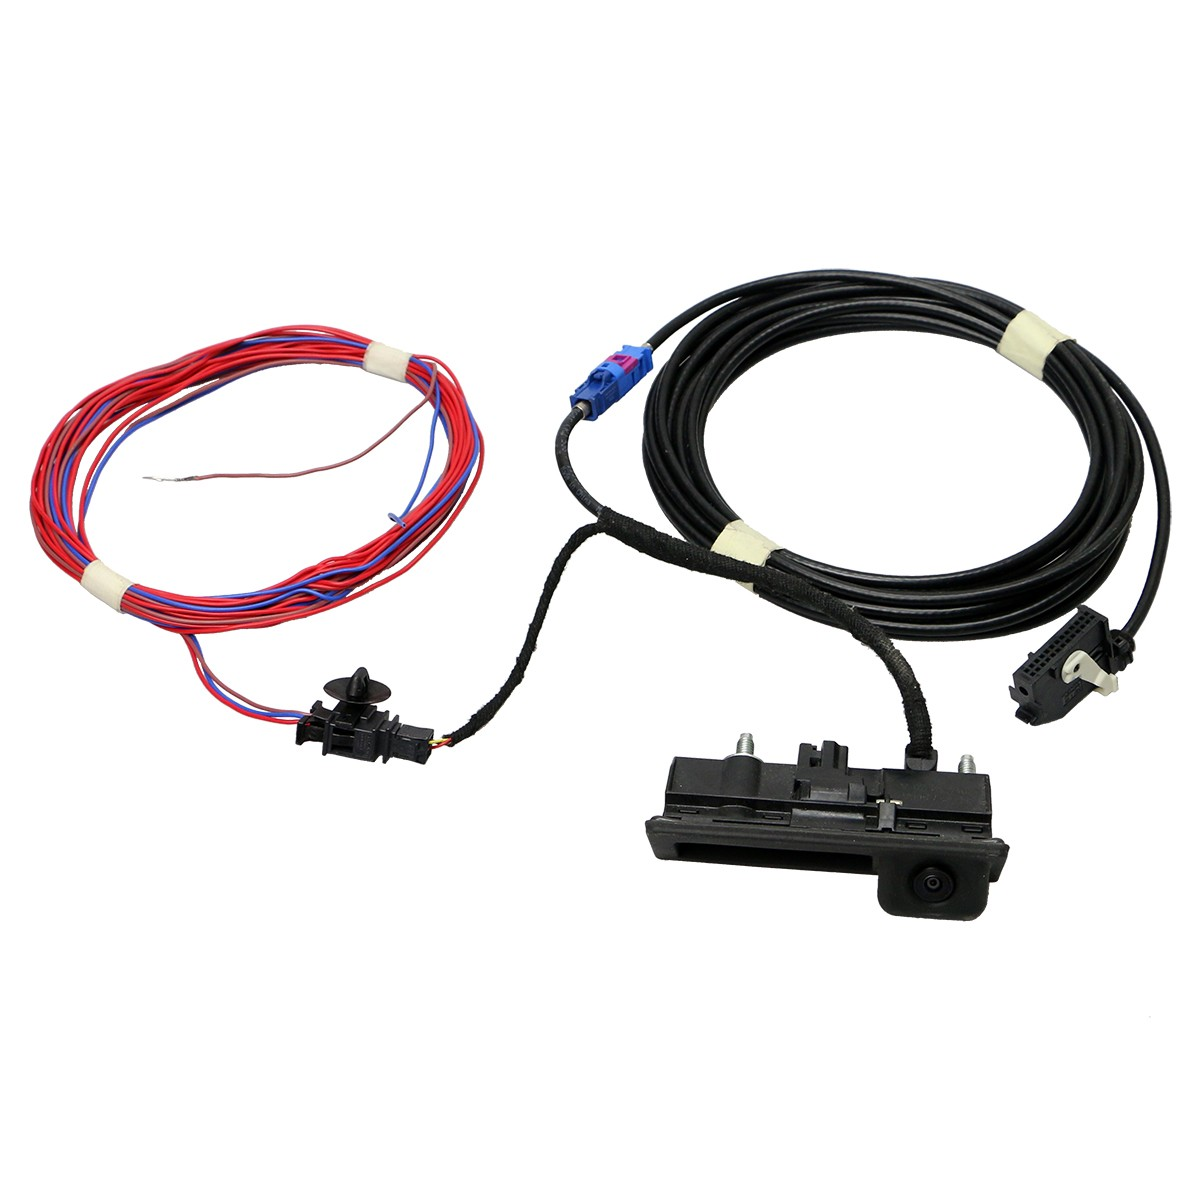 Details about OEM RGB Rear View Camera and Wire Harness Set for VW RCD510  RNS315 RNS510 Backup